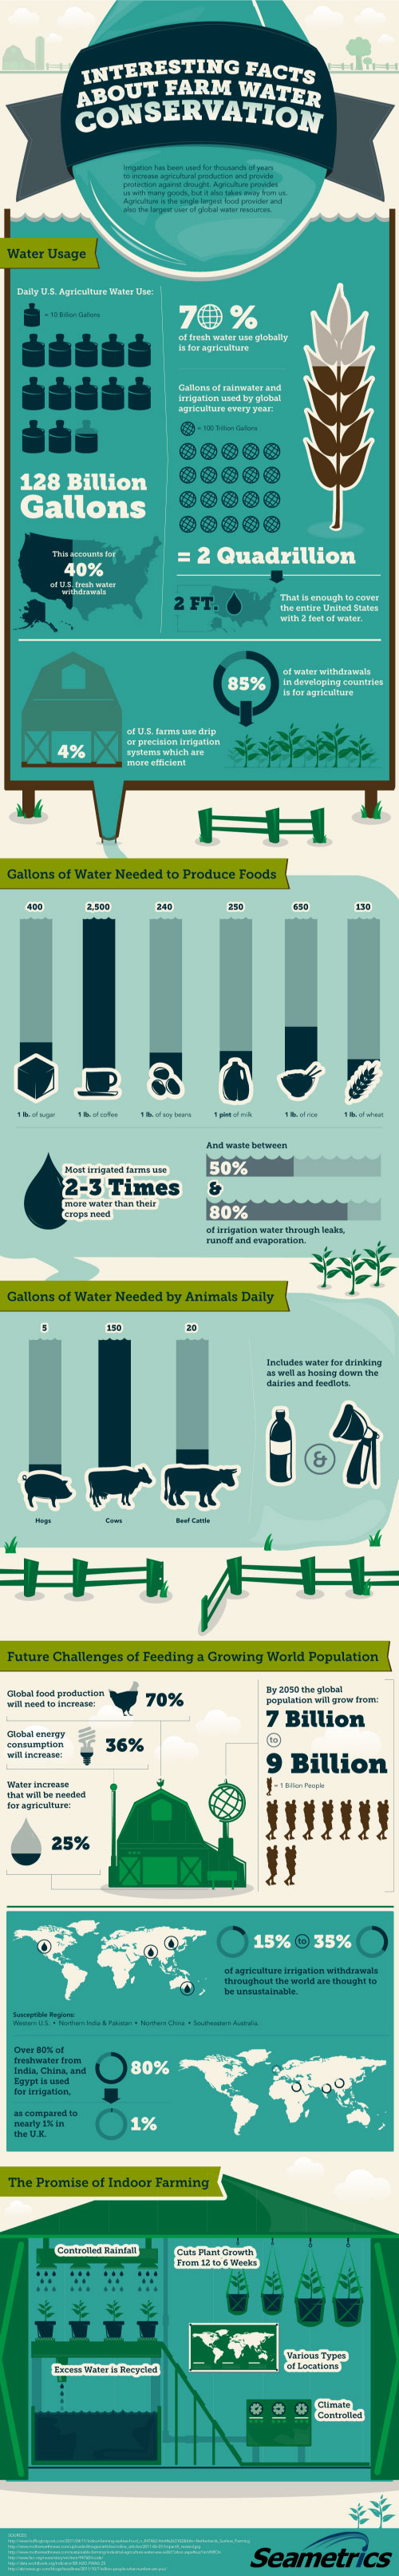 seametrics, water conservation, water infographic, water and farming, water and agriculture, farming and the environment, agriculture drain on water, Interesting Facts About Farm Water Conservation